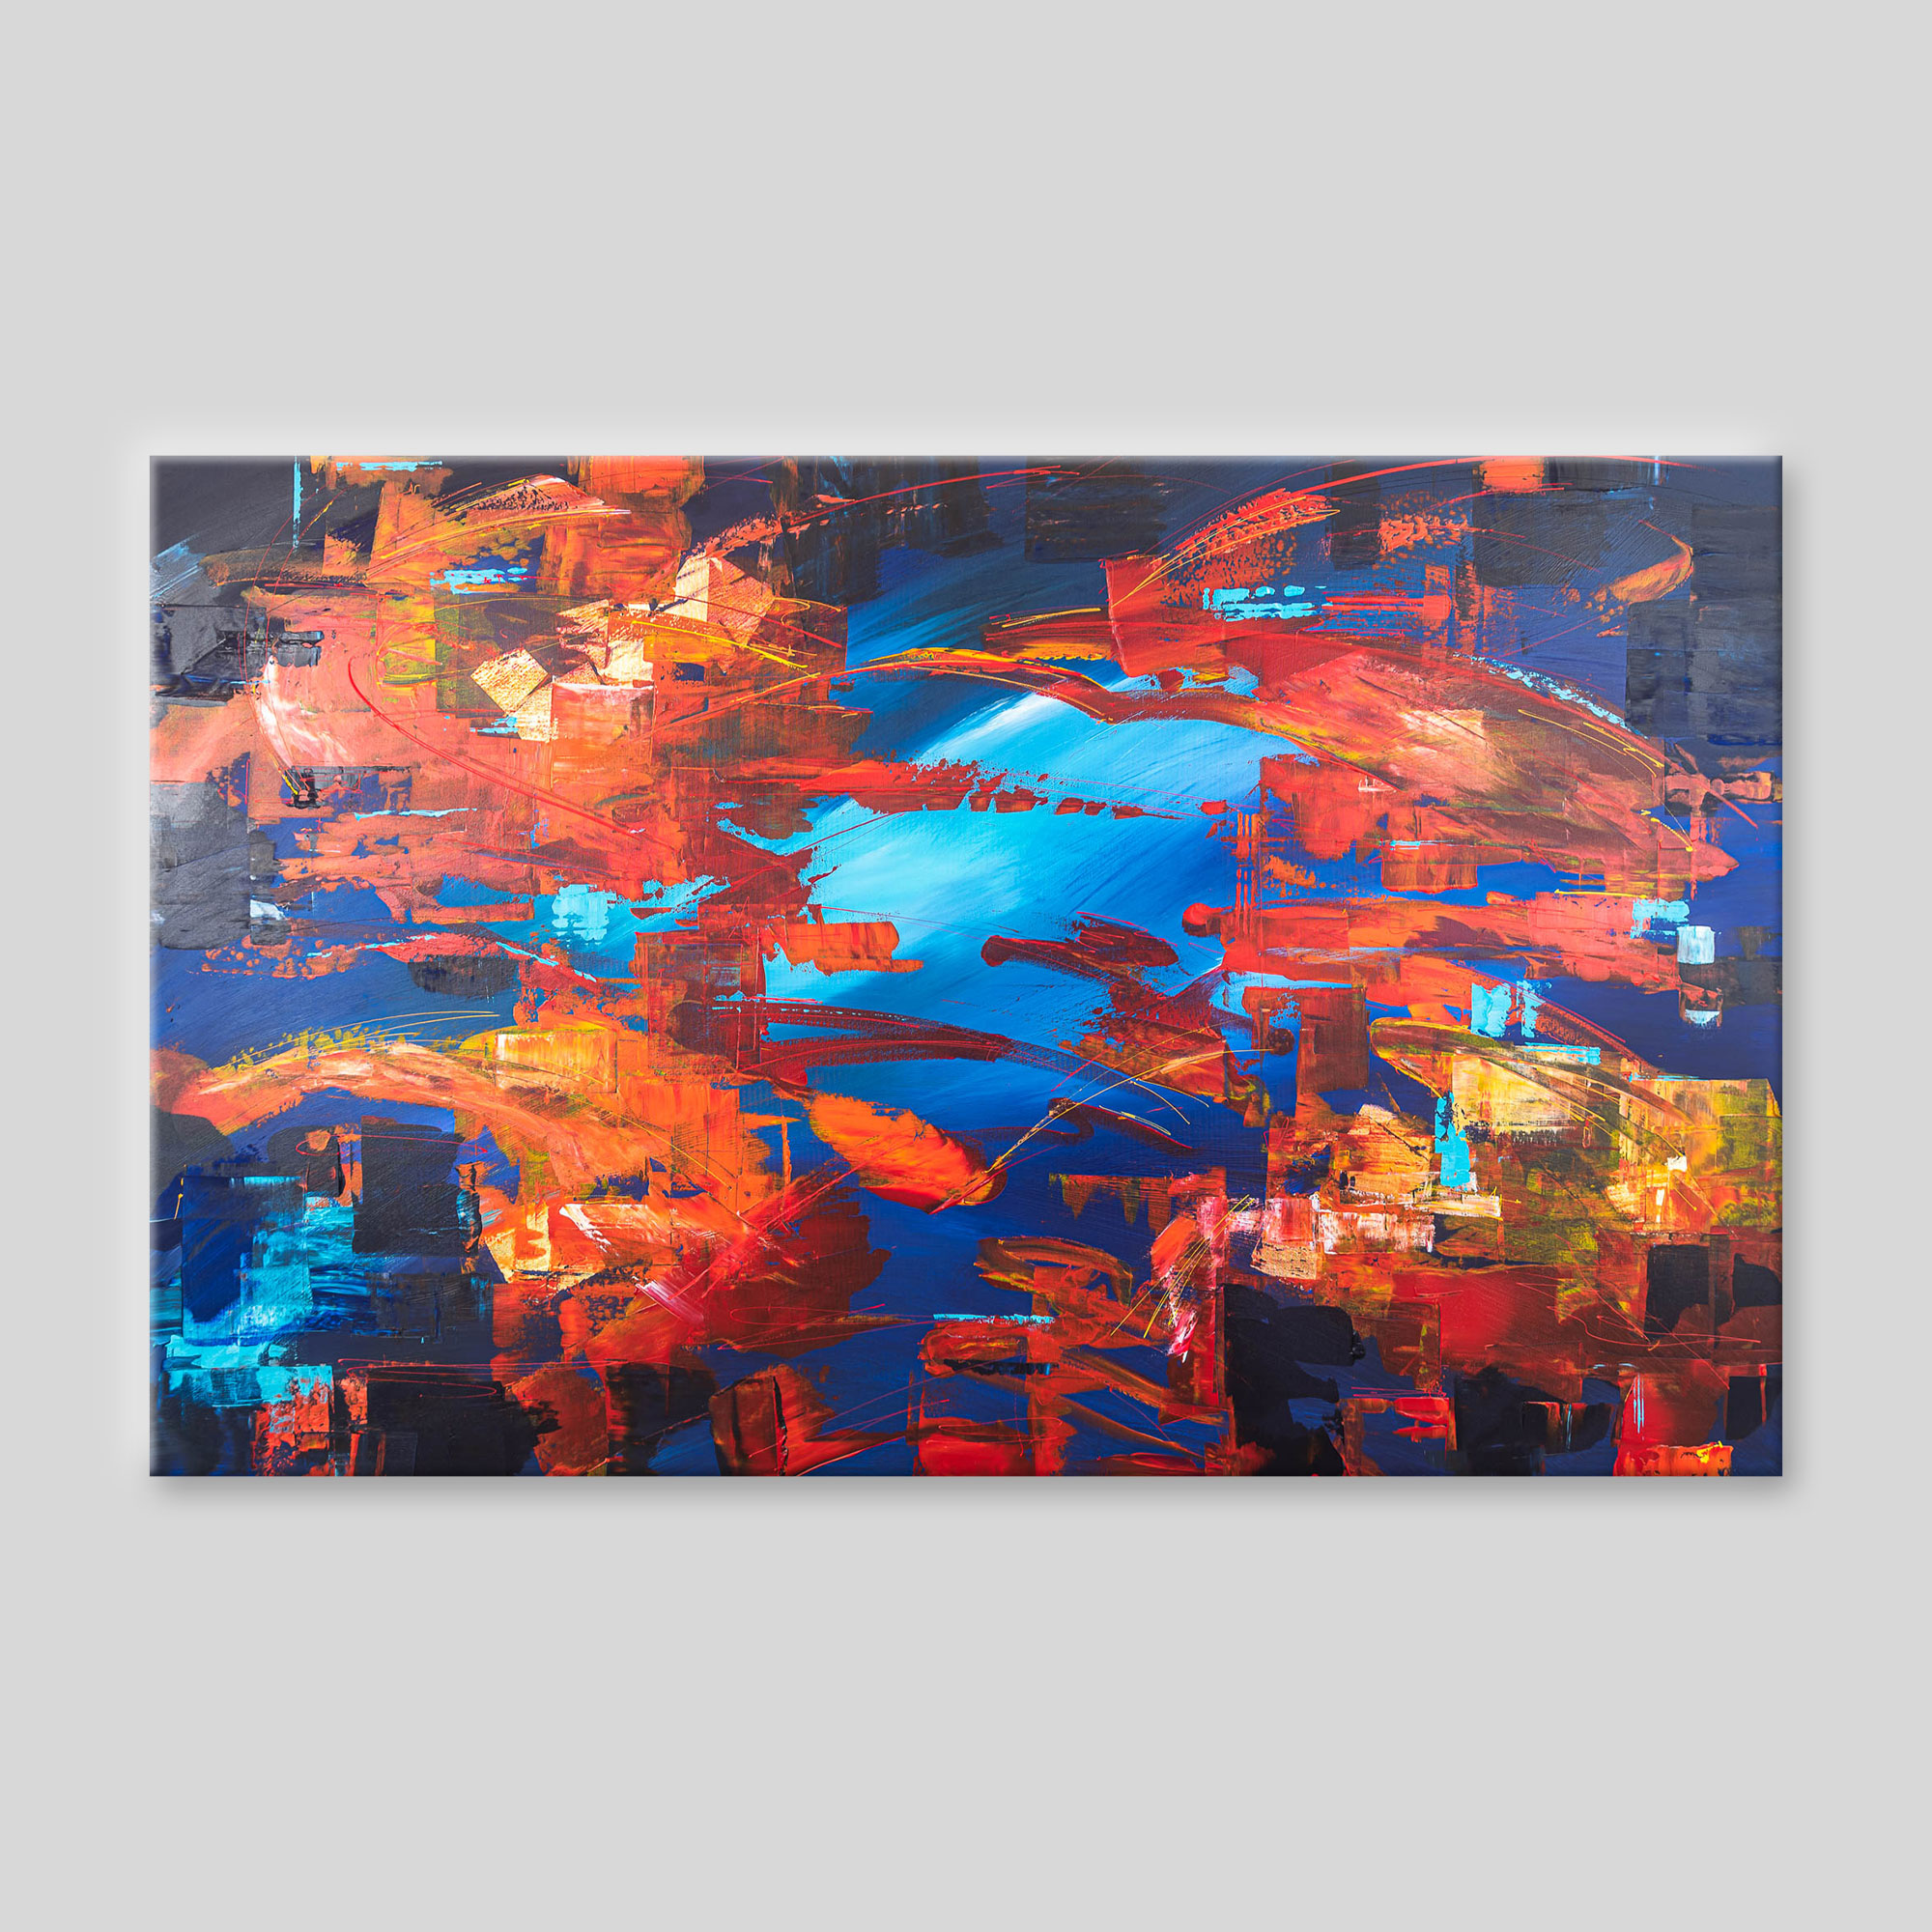 Expanse - Abstract Art Original Painting by UK Contemporary Artist Paul Kenton, from the Abstract Collection